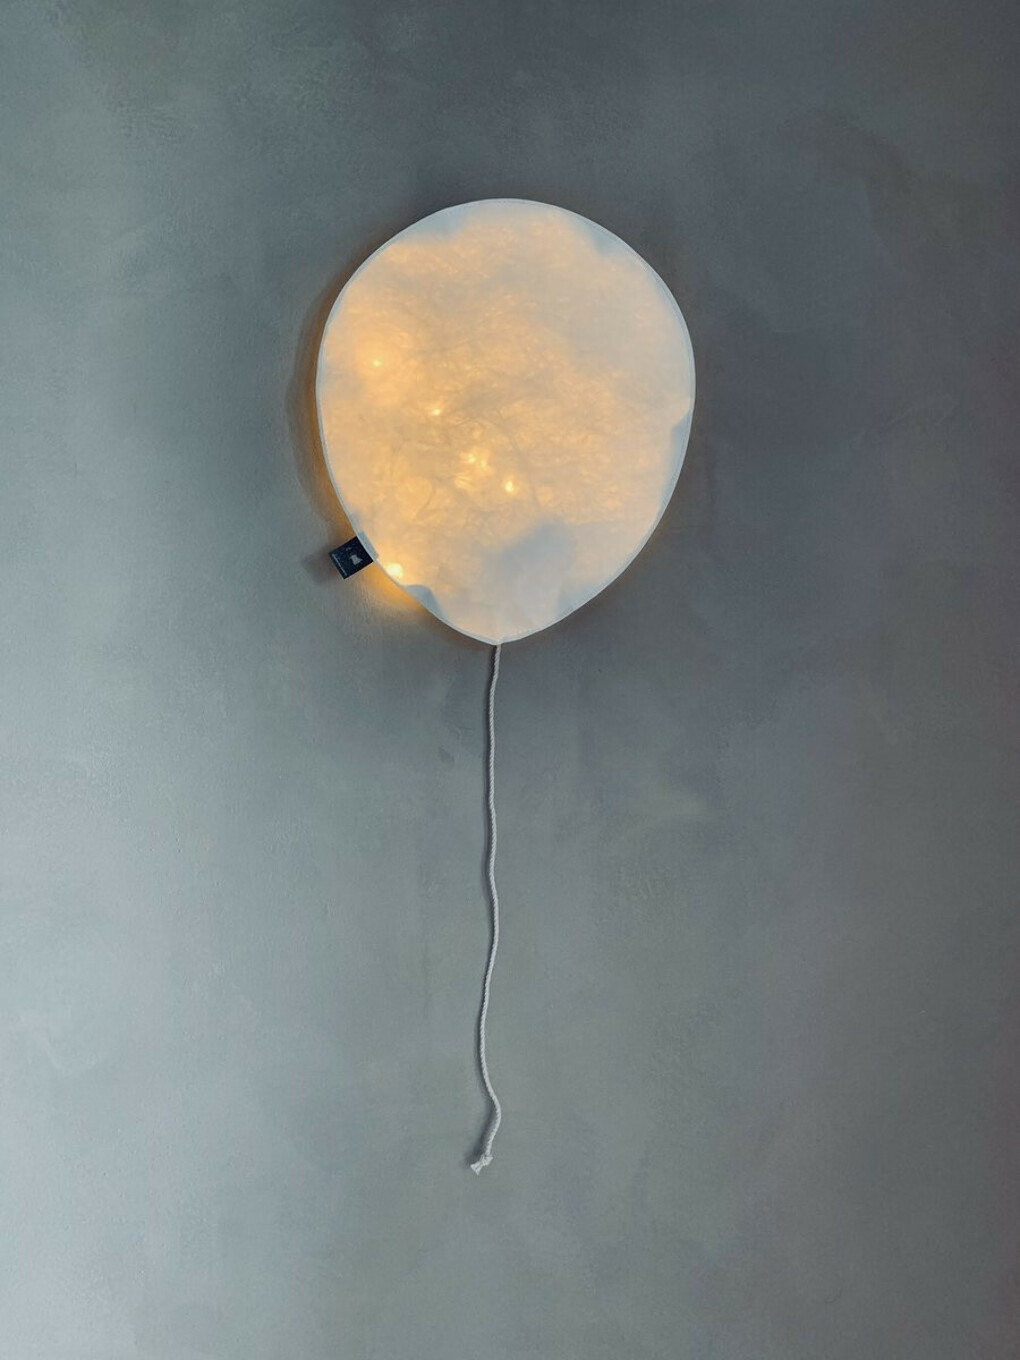 White Lighting Balloon